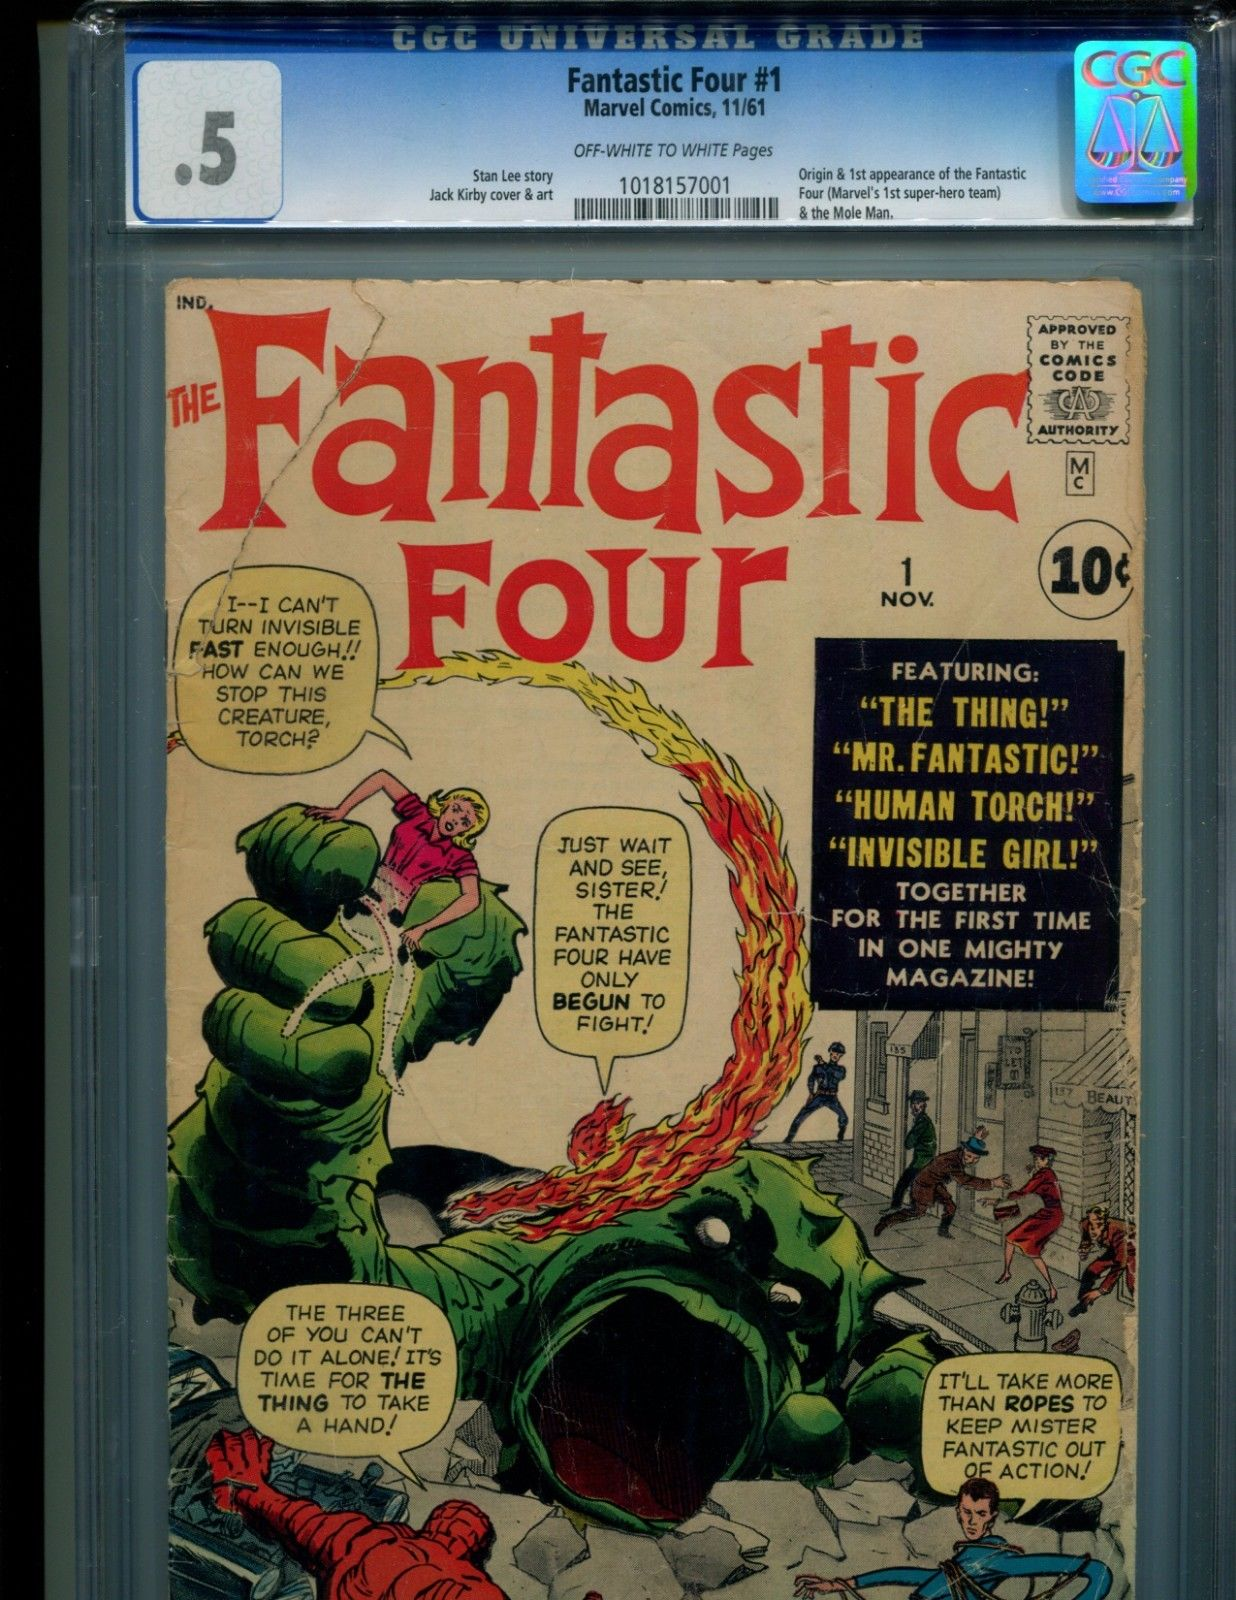 FANTASTIC FOUR 1 CGC .5 O/W T W PGS LOOKS 4.5-5.0 MARVEL'S 1ST SUPER HERO TEAM